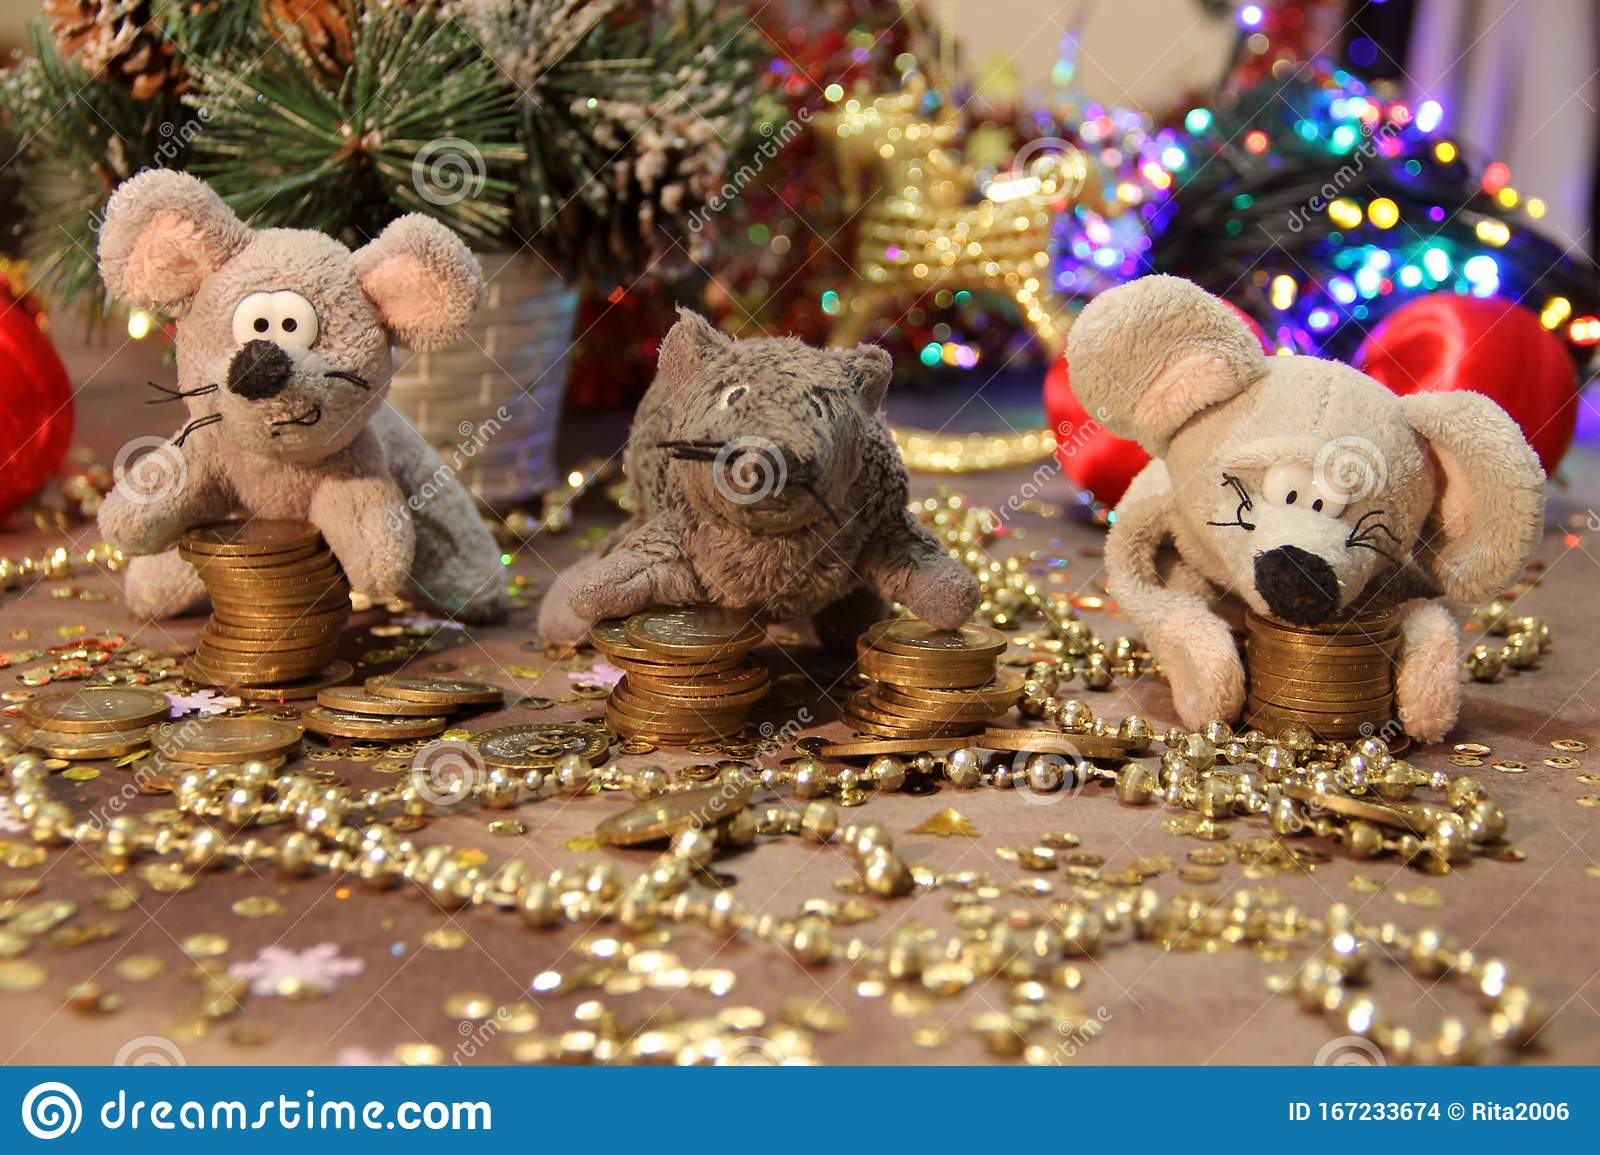 2020 Christmas Coins Happy New Year 2020! Three Gray Rats With Coins On A Gold